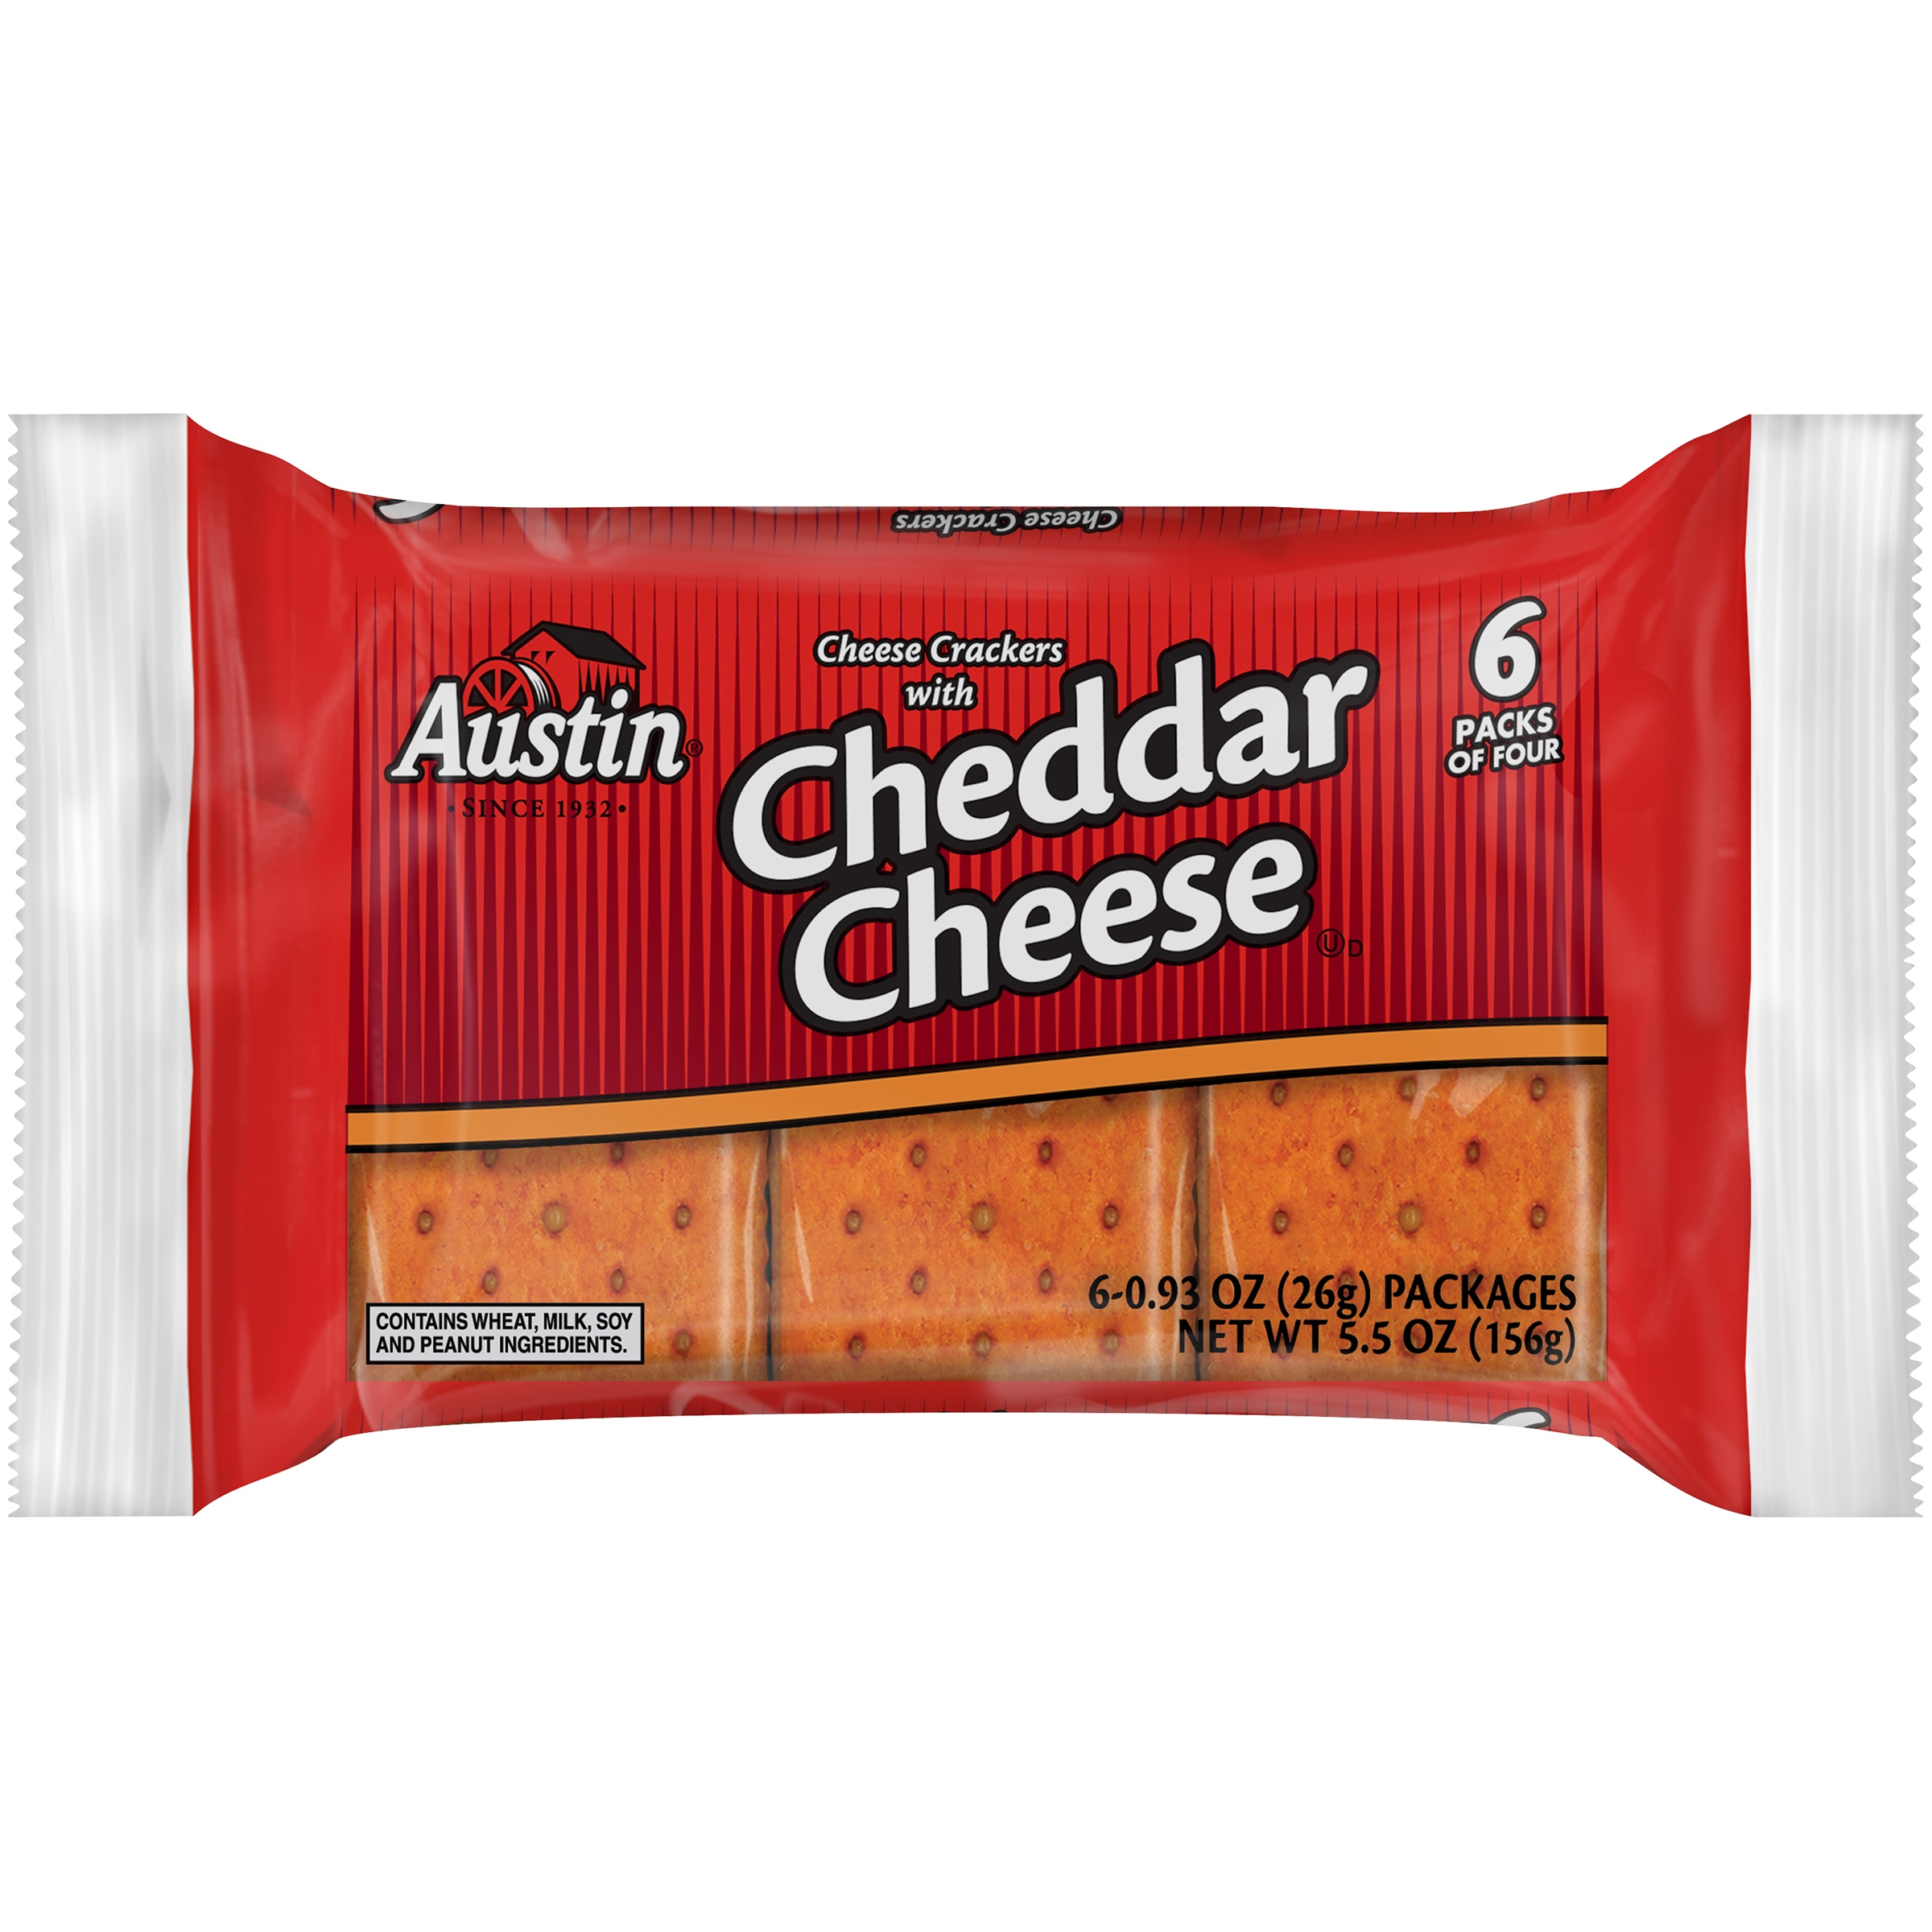 Austin Cheese Snack Crackers with Cheddar Cheese 6-4 ct. Packs